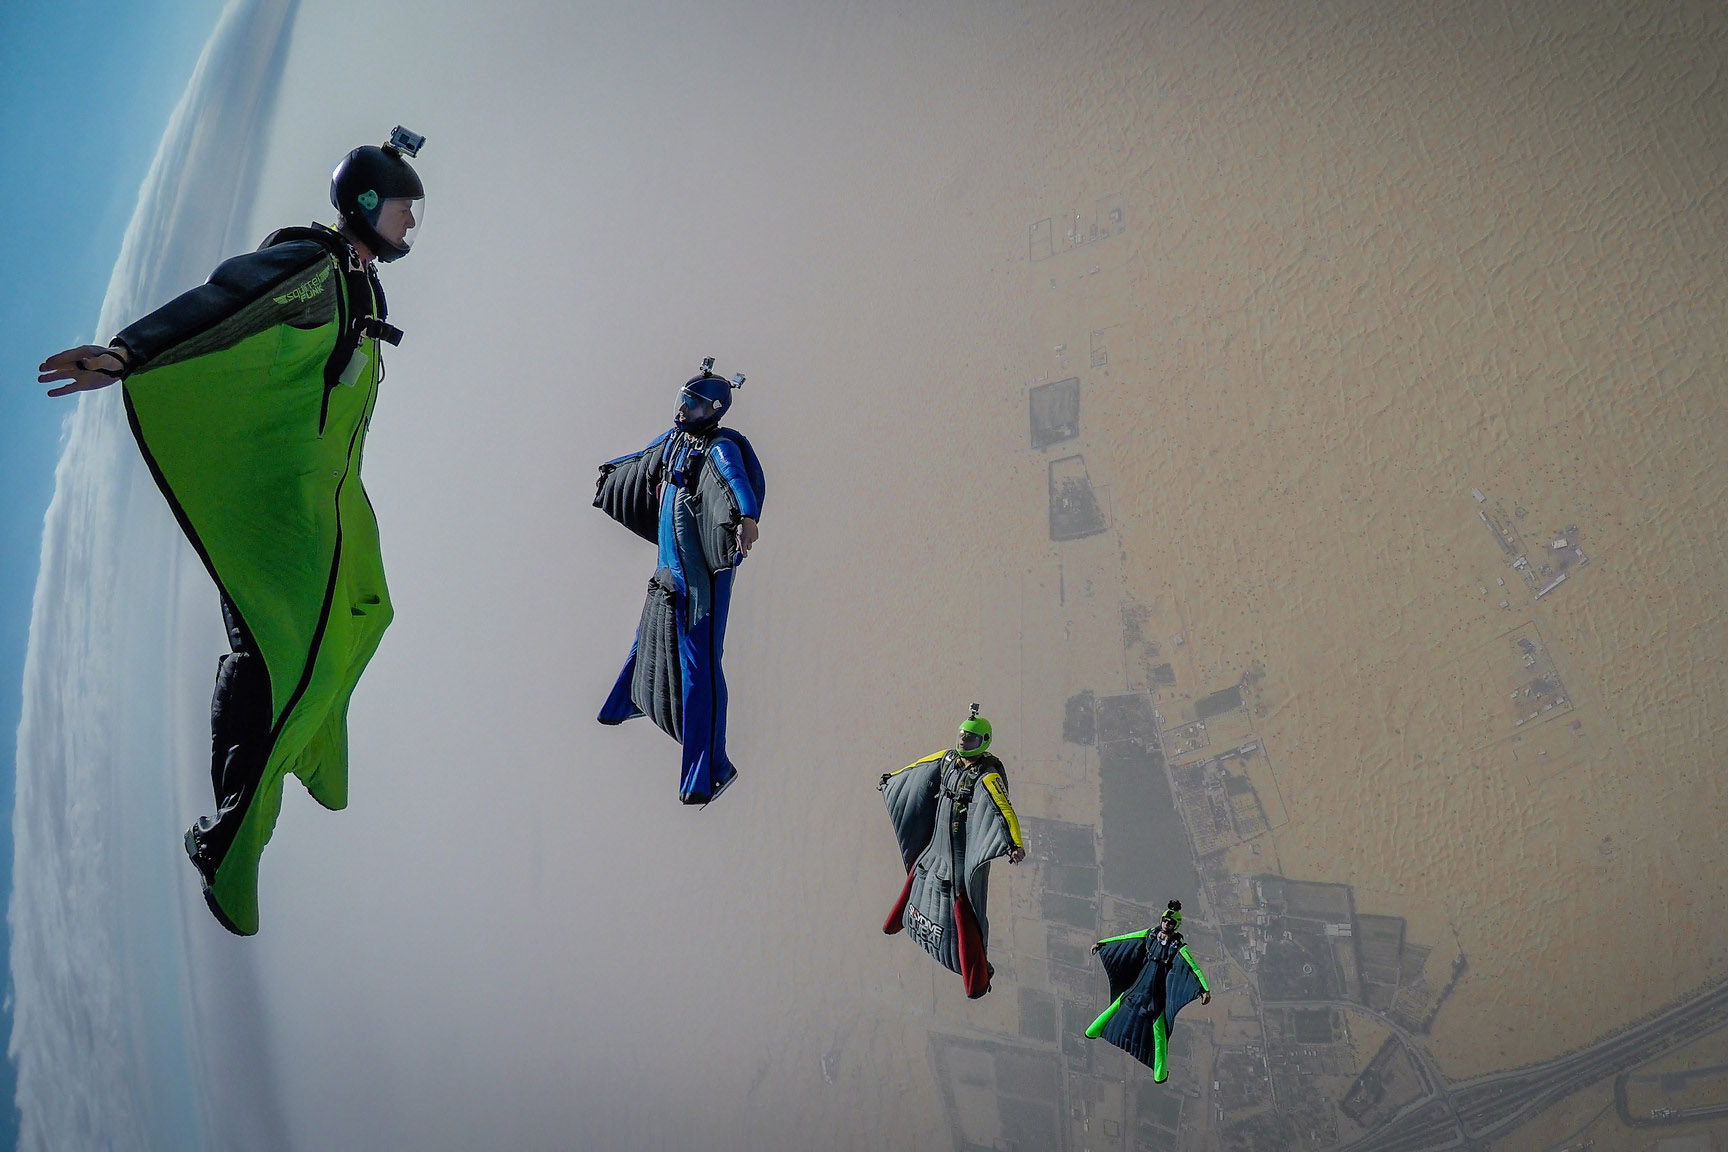 Four skydivers getting into formation over the Dubai Desert